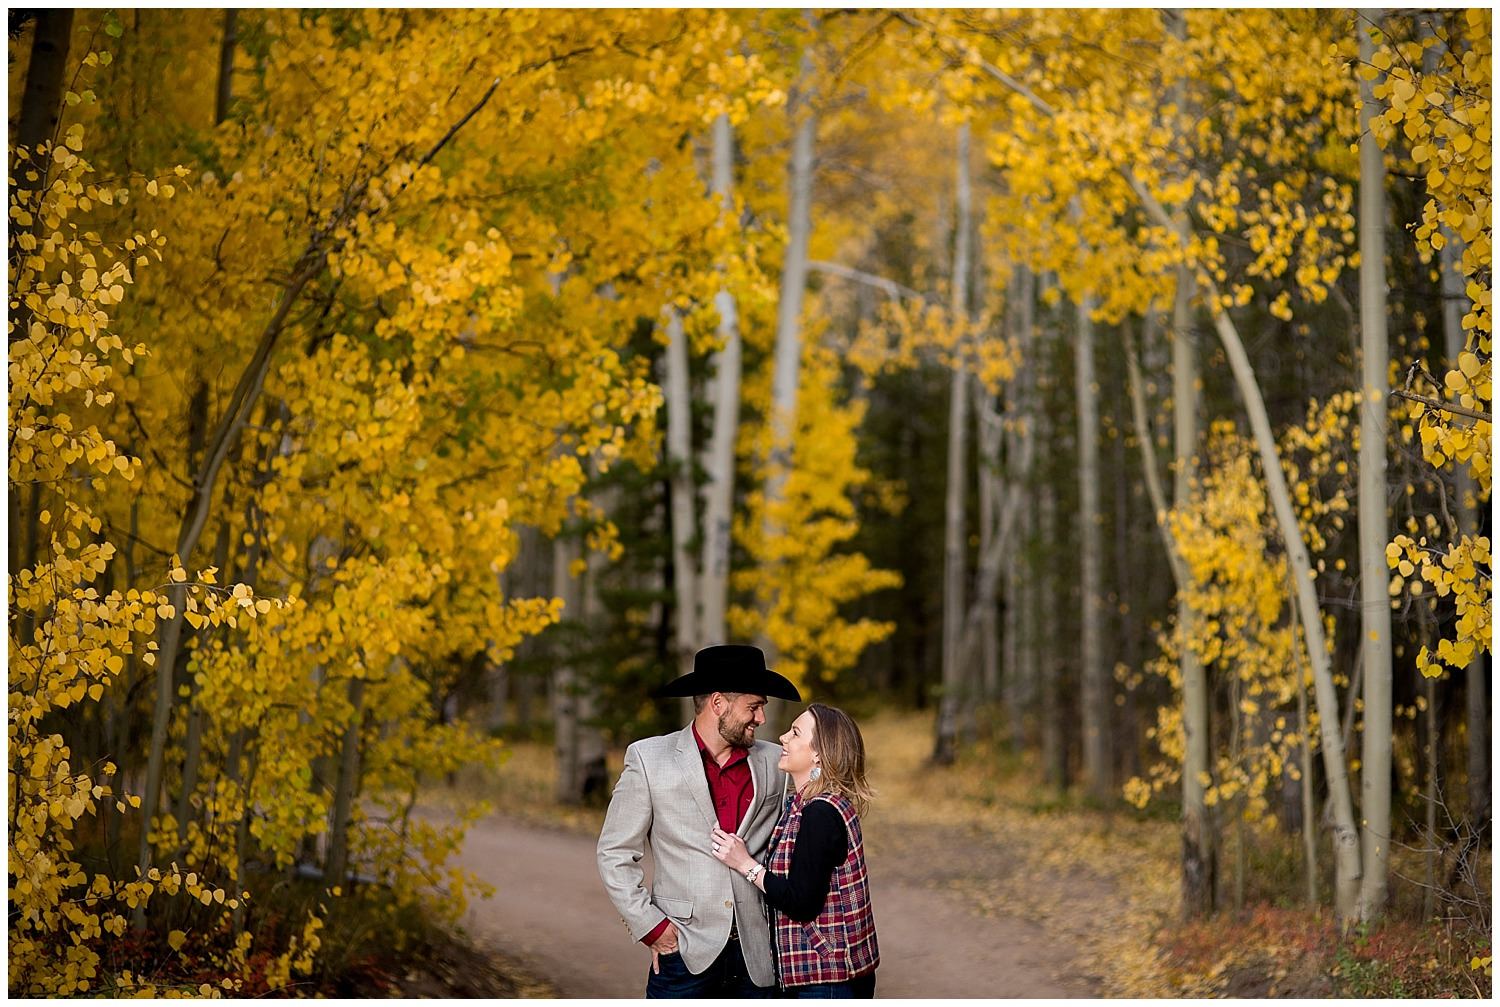 Colorado Fall engagement photo in Aspens